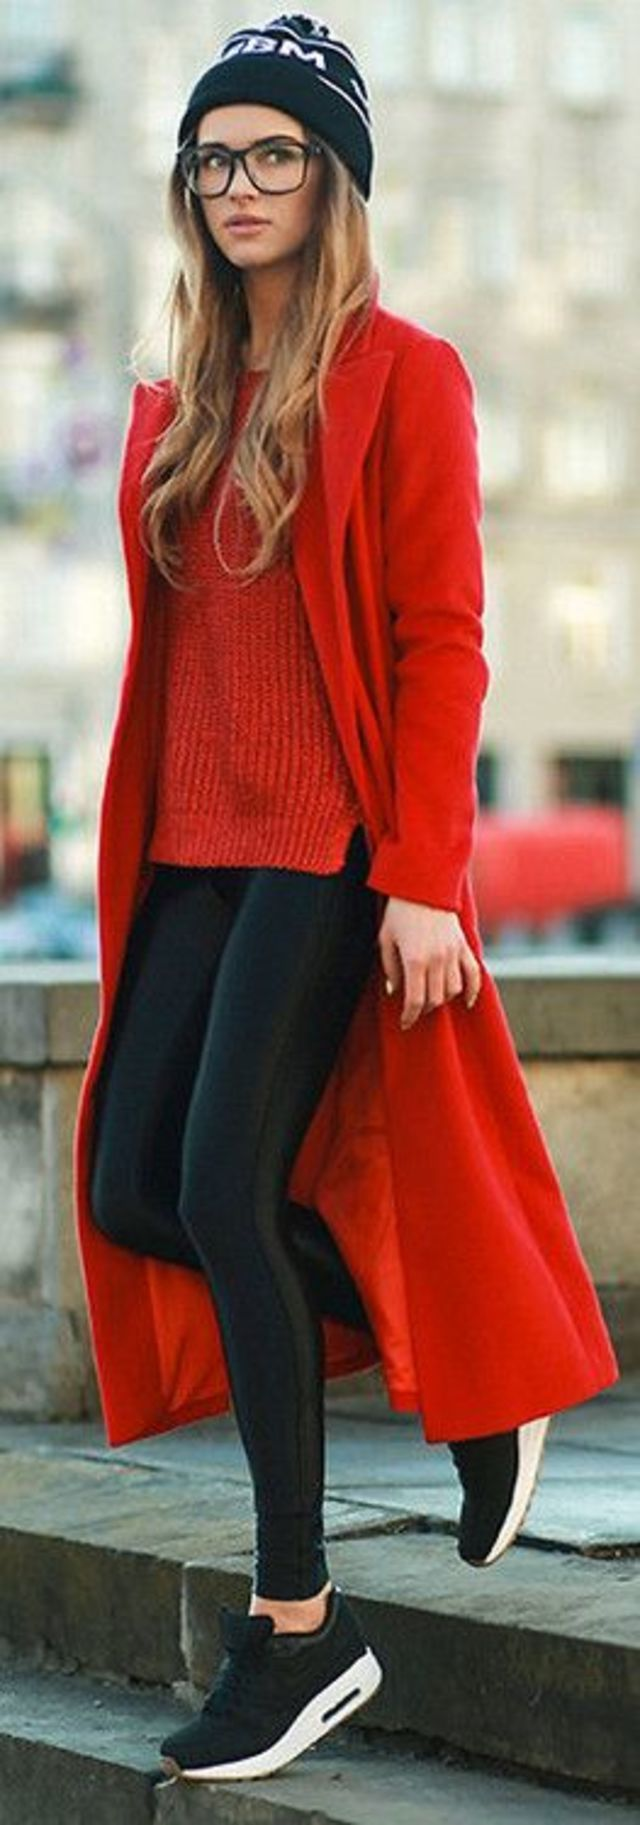 60 Winter Outfit Ideas | Winter season and Winter